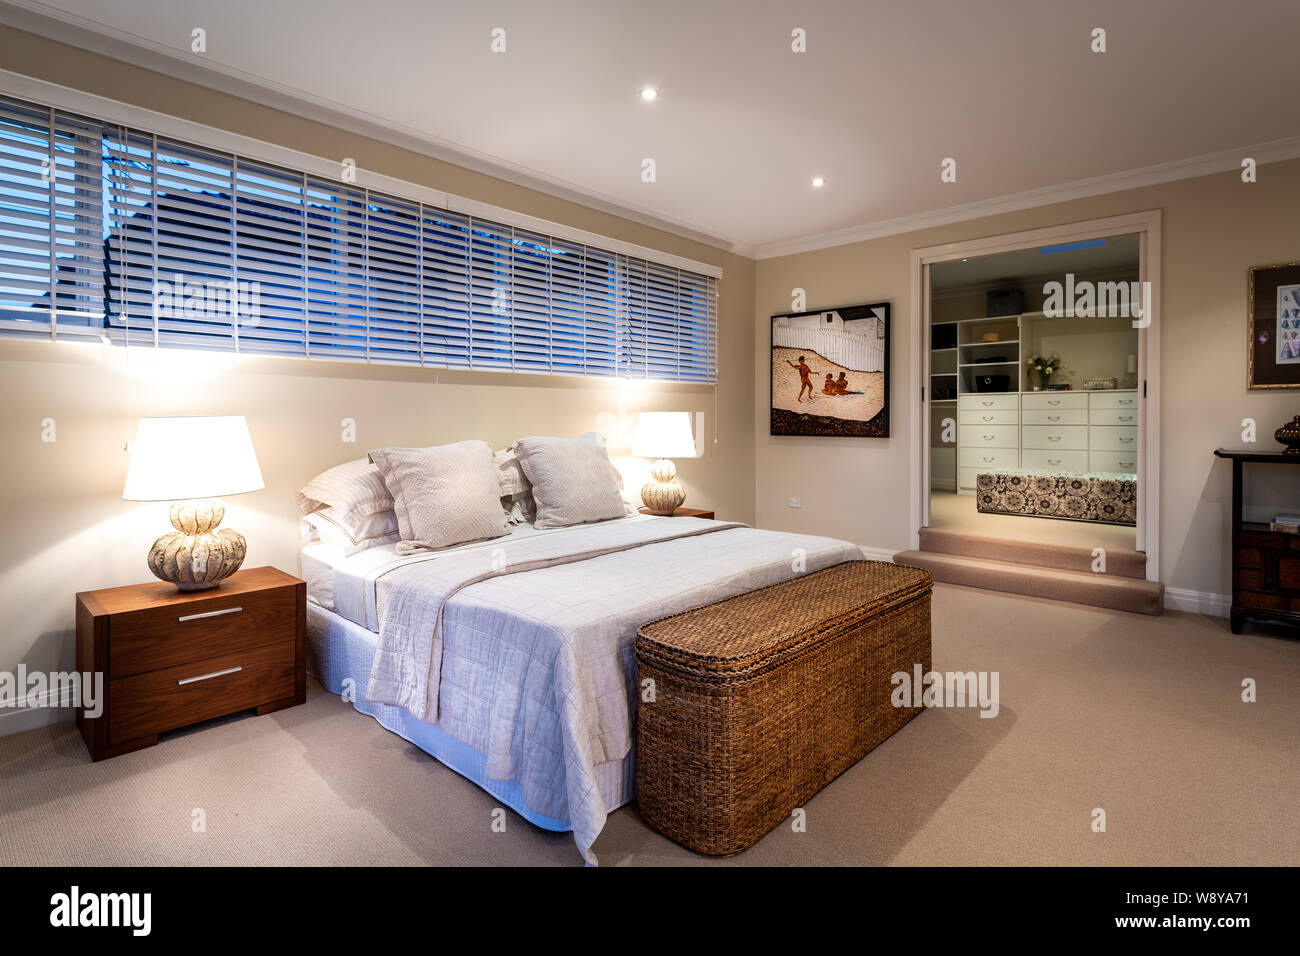 Sydney Australia August 1 2019 Modern Luxury Master Bed Room With Bed Side Tables Lamps Down Lights And Walk In Robe Real Estate Stock Photo Alamy